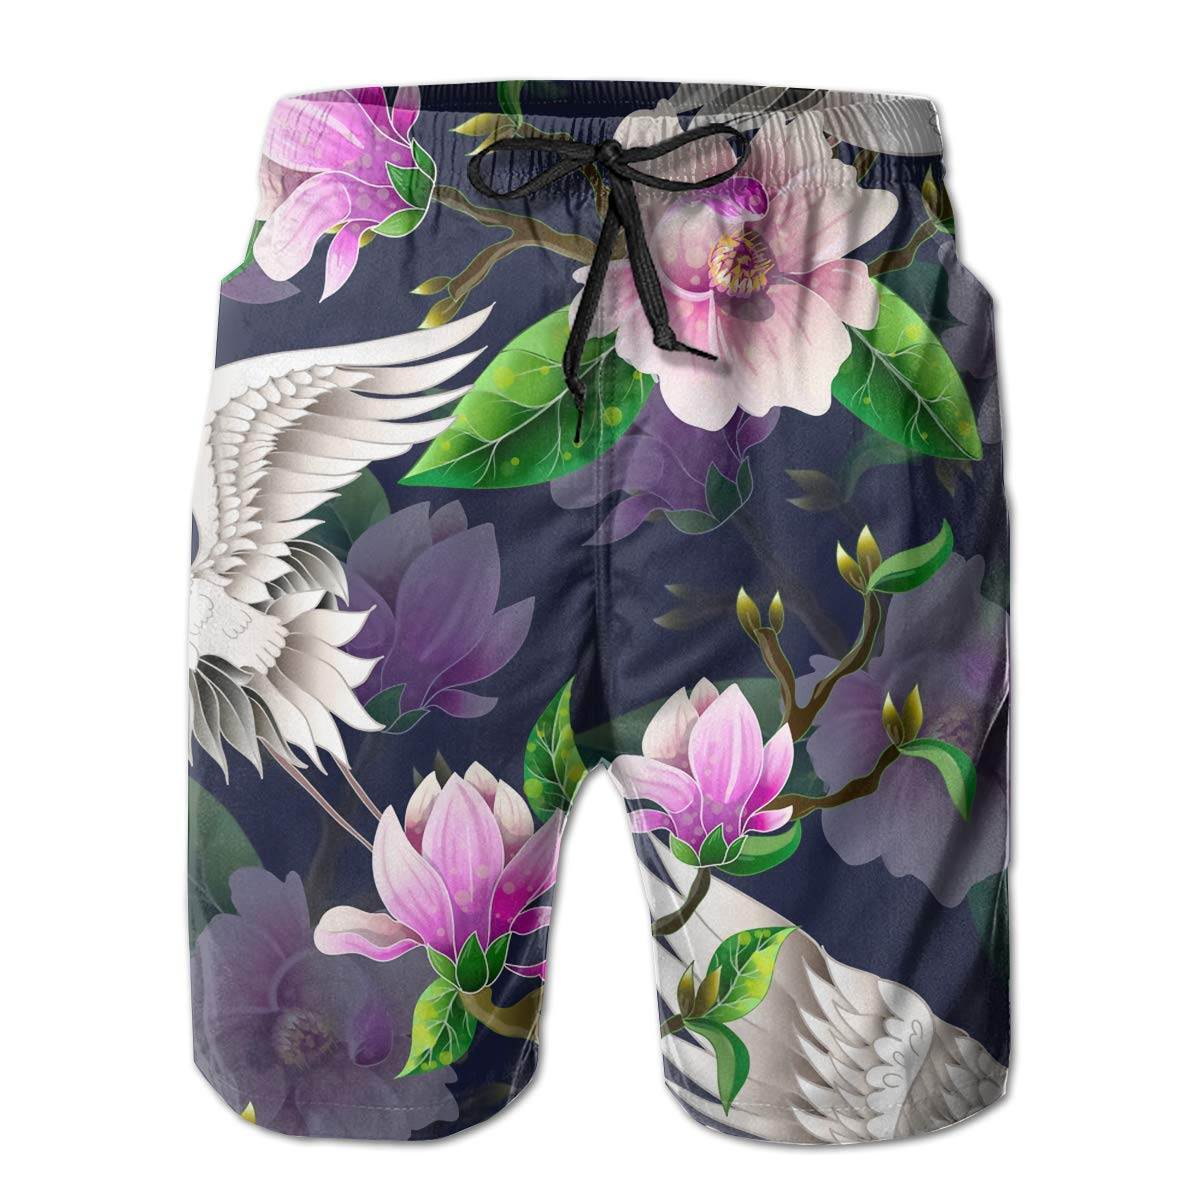 SARA NELL Mens Swim Trunks Magnolia Flowers Surfing Beach Board Shorts Swimwear